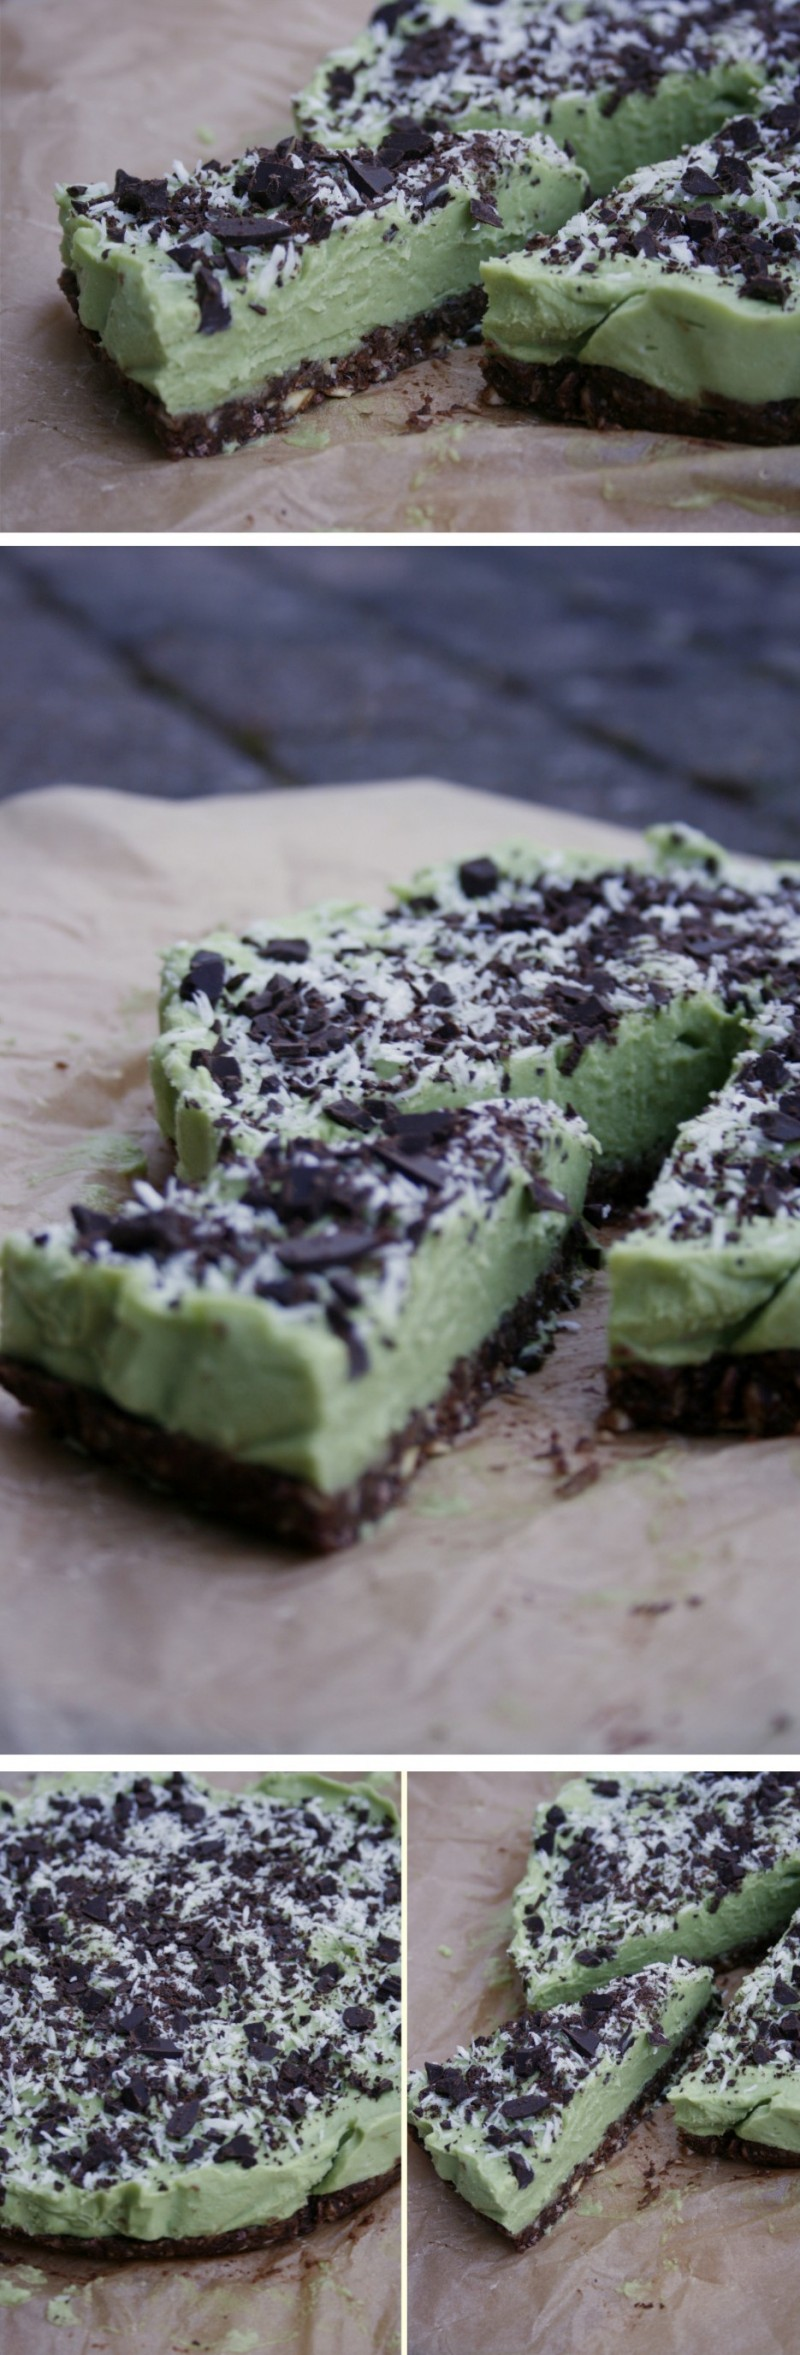 Raw chocolate avocado cheesecake - christinebonde.dk